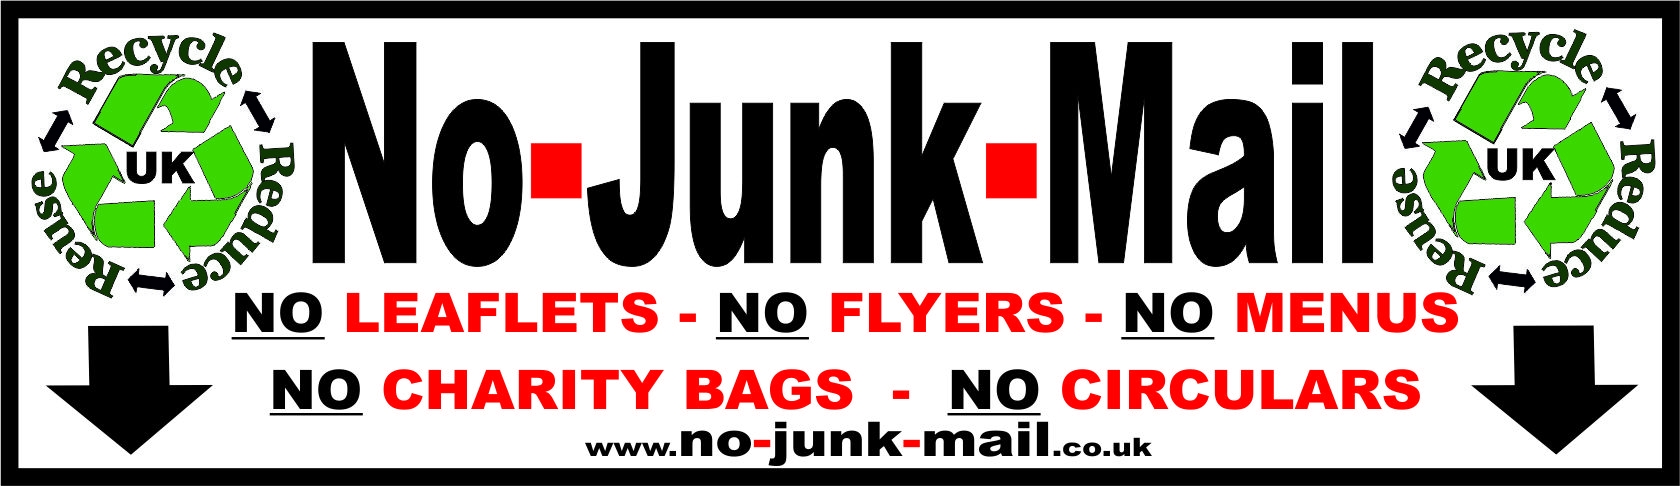 this is our no junk mail sign sticker that is reducing junk mail